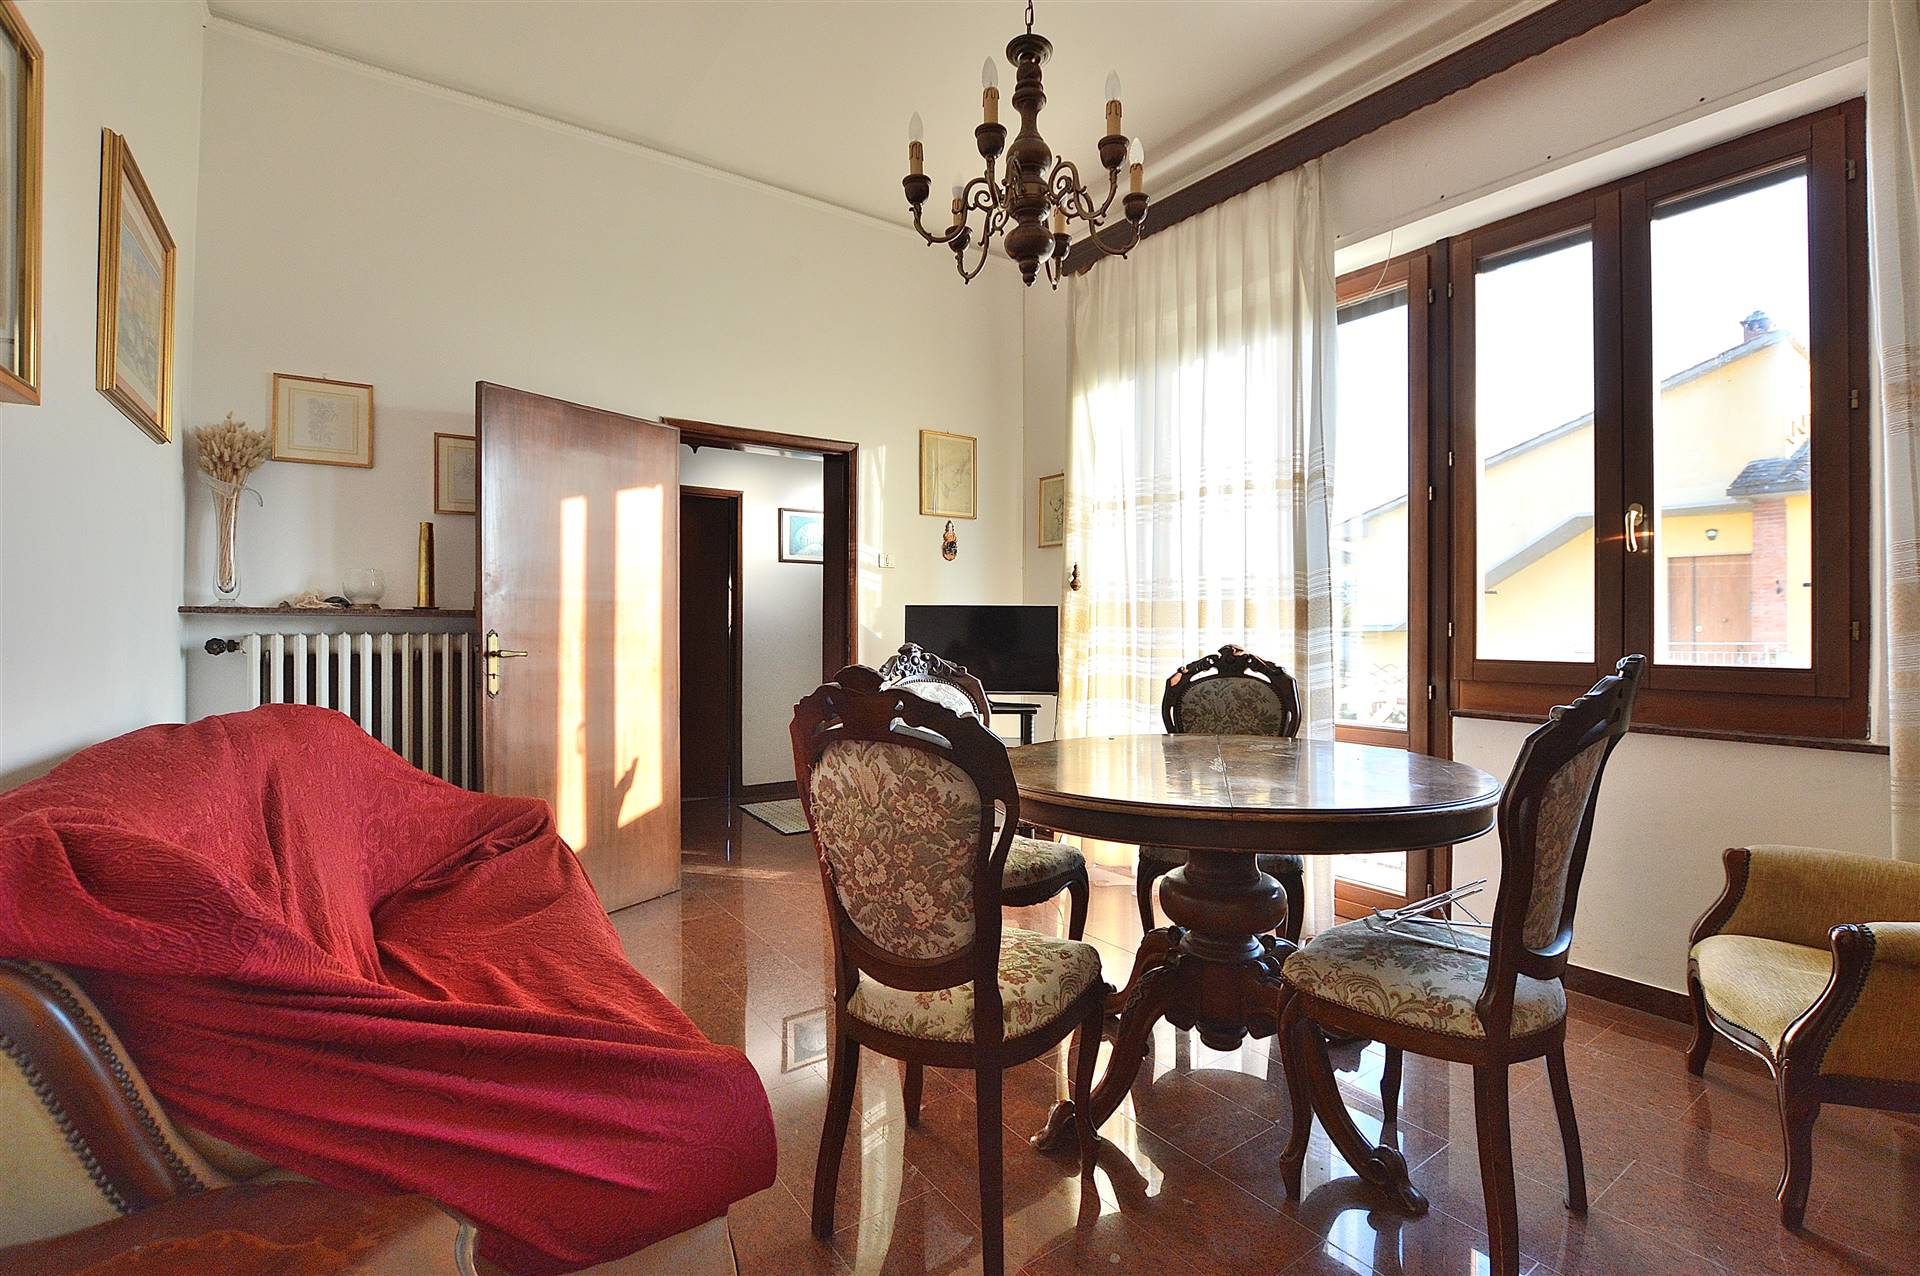 SAN PROSPERO, SIENA, Apartment for sale of 99 Sq. mt., Habitable, Heating Individual heating system, Energetic class: G, Epi: 369,43 kwh/m2 year, placed at 1° on 1, composed by: 4 Rooms, Separate